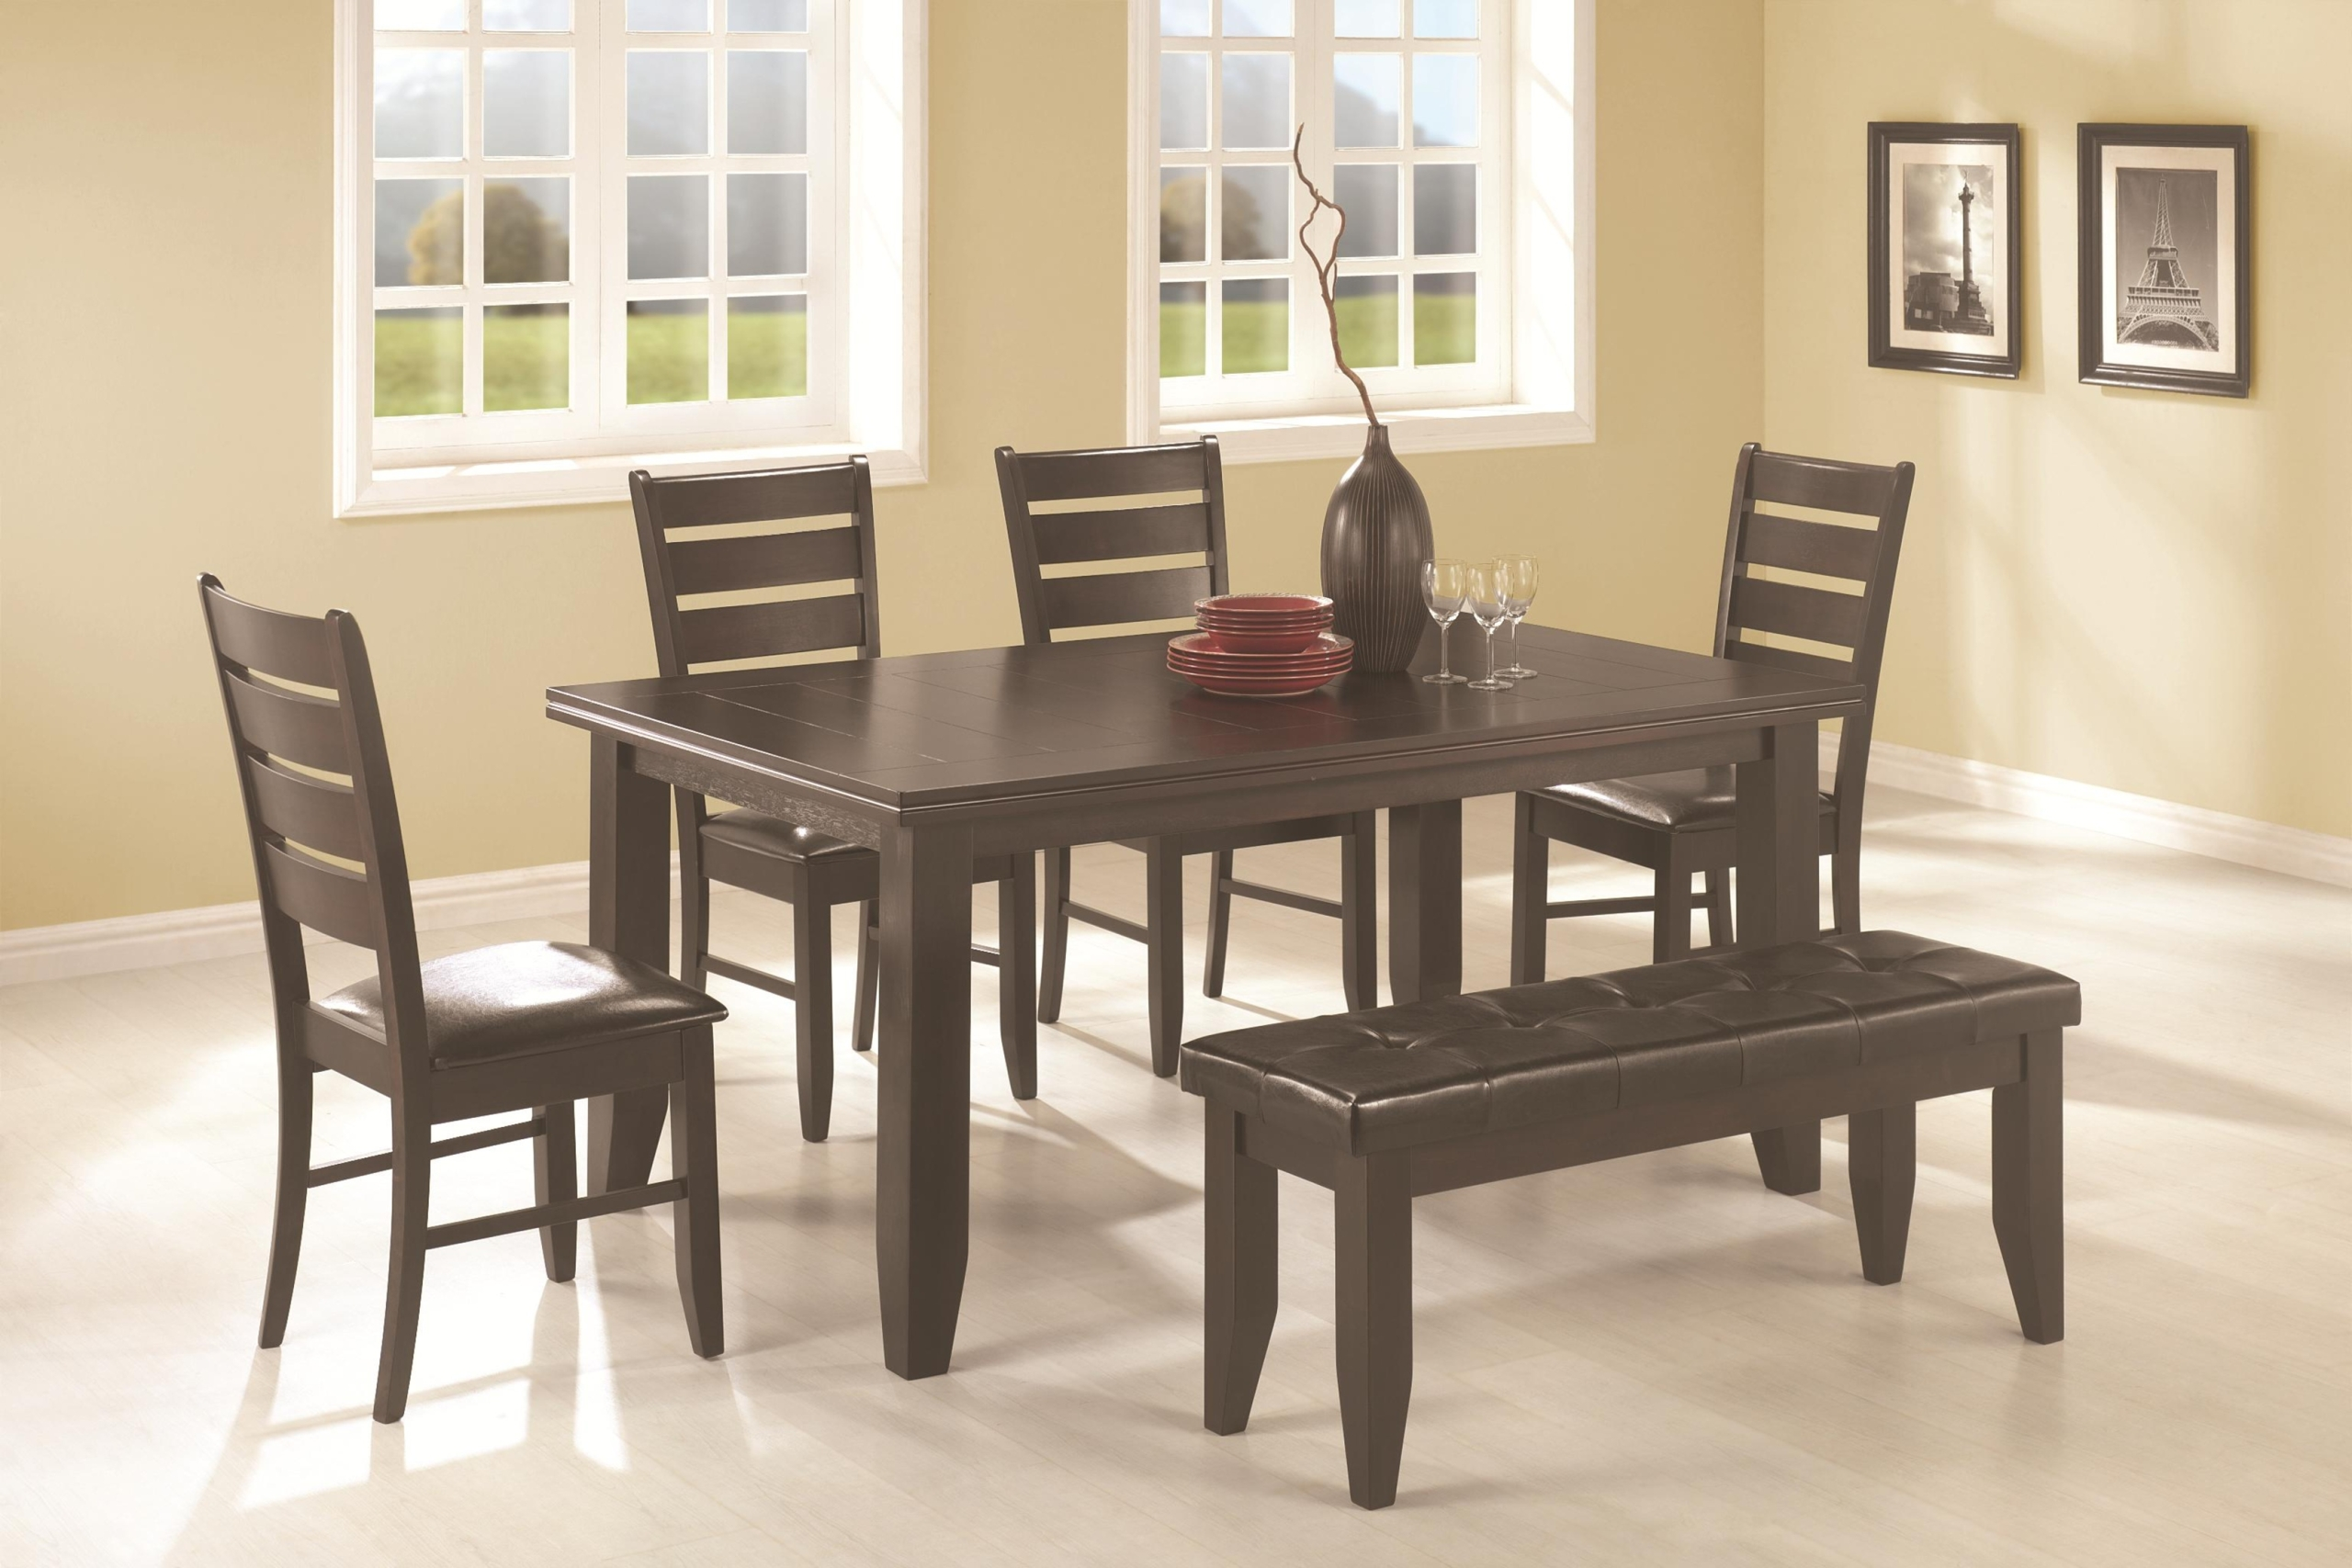 Dining Table Bench Set Dining Table  sc 1 st  Visual Hunt & Dining Table With Bench - Visual Hunt